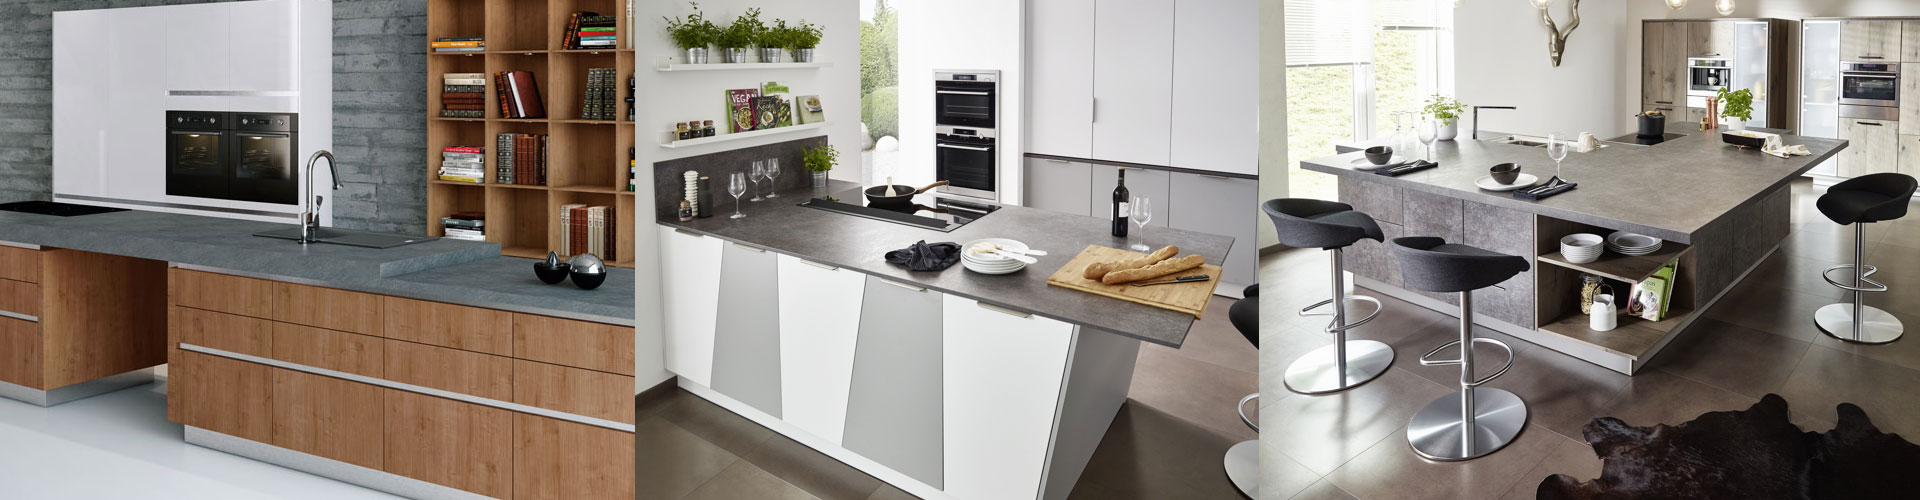 German Kitchens Aberdeen & Aberdeenshire: Kuhlmann Kitchens